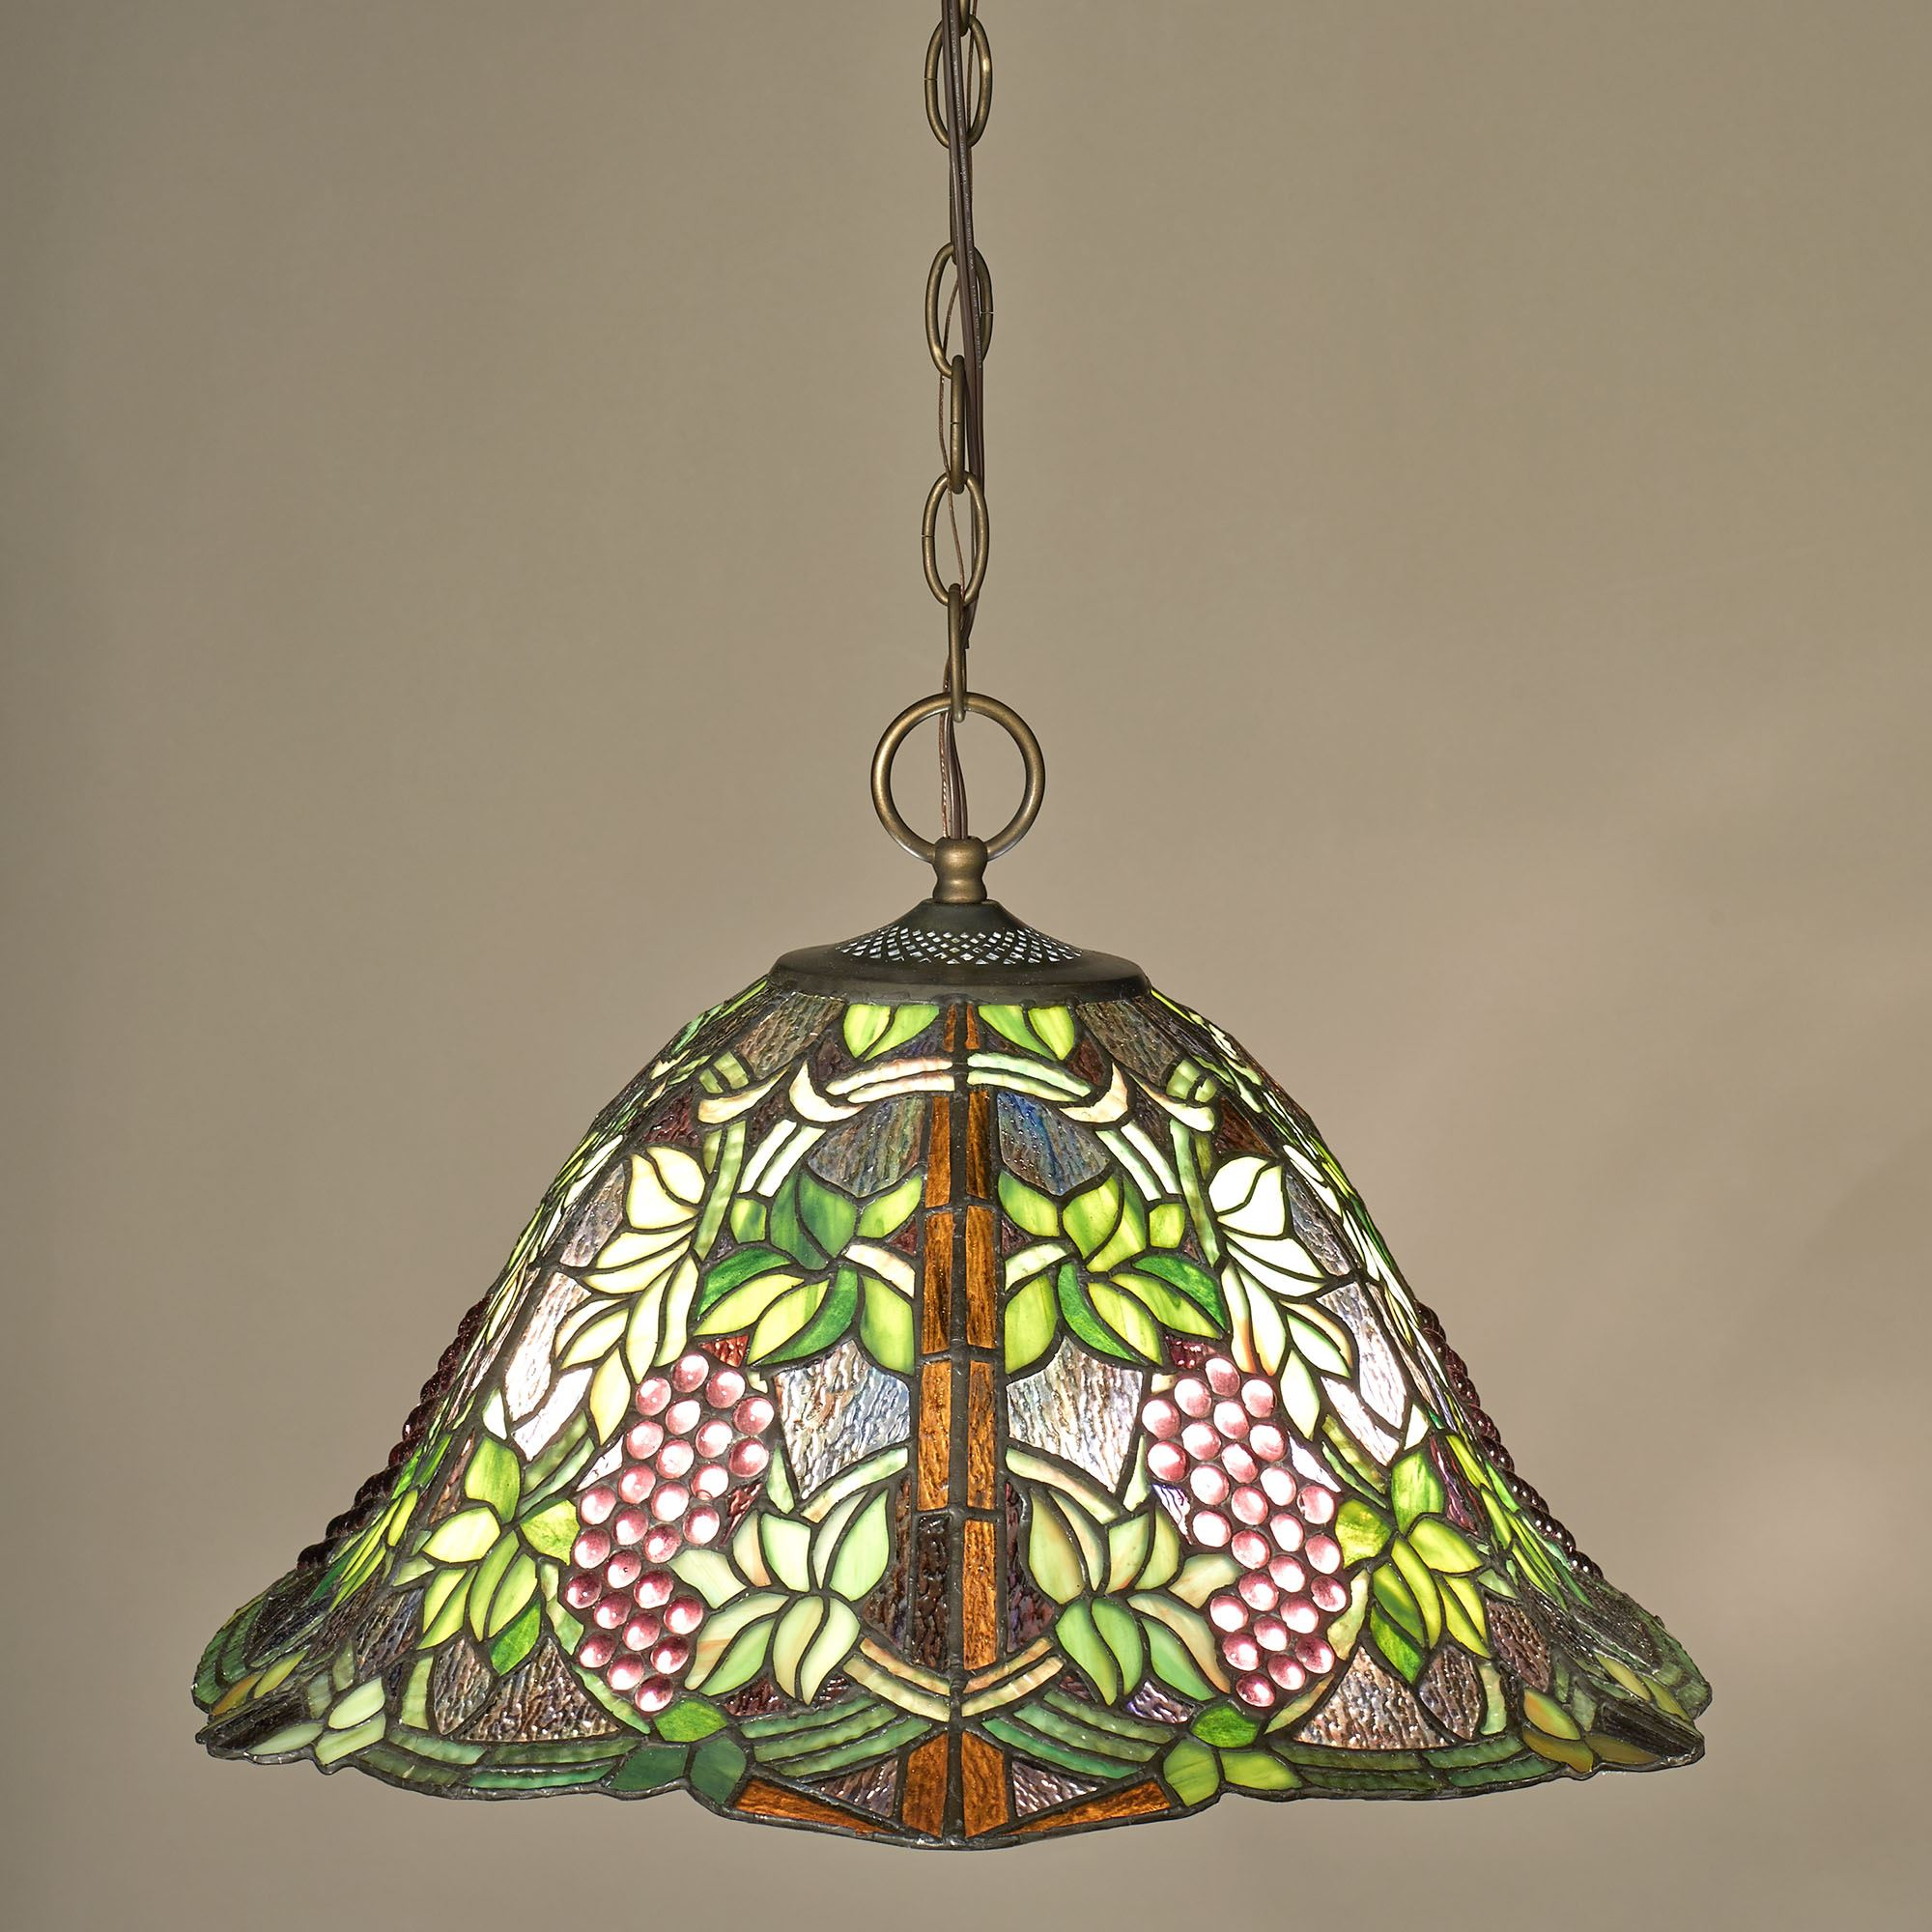 Vintage Grapevine Stained Gl Ceiling Light Olive Touch To Zoom